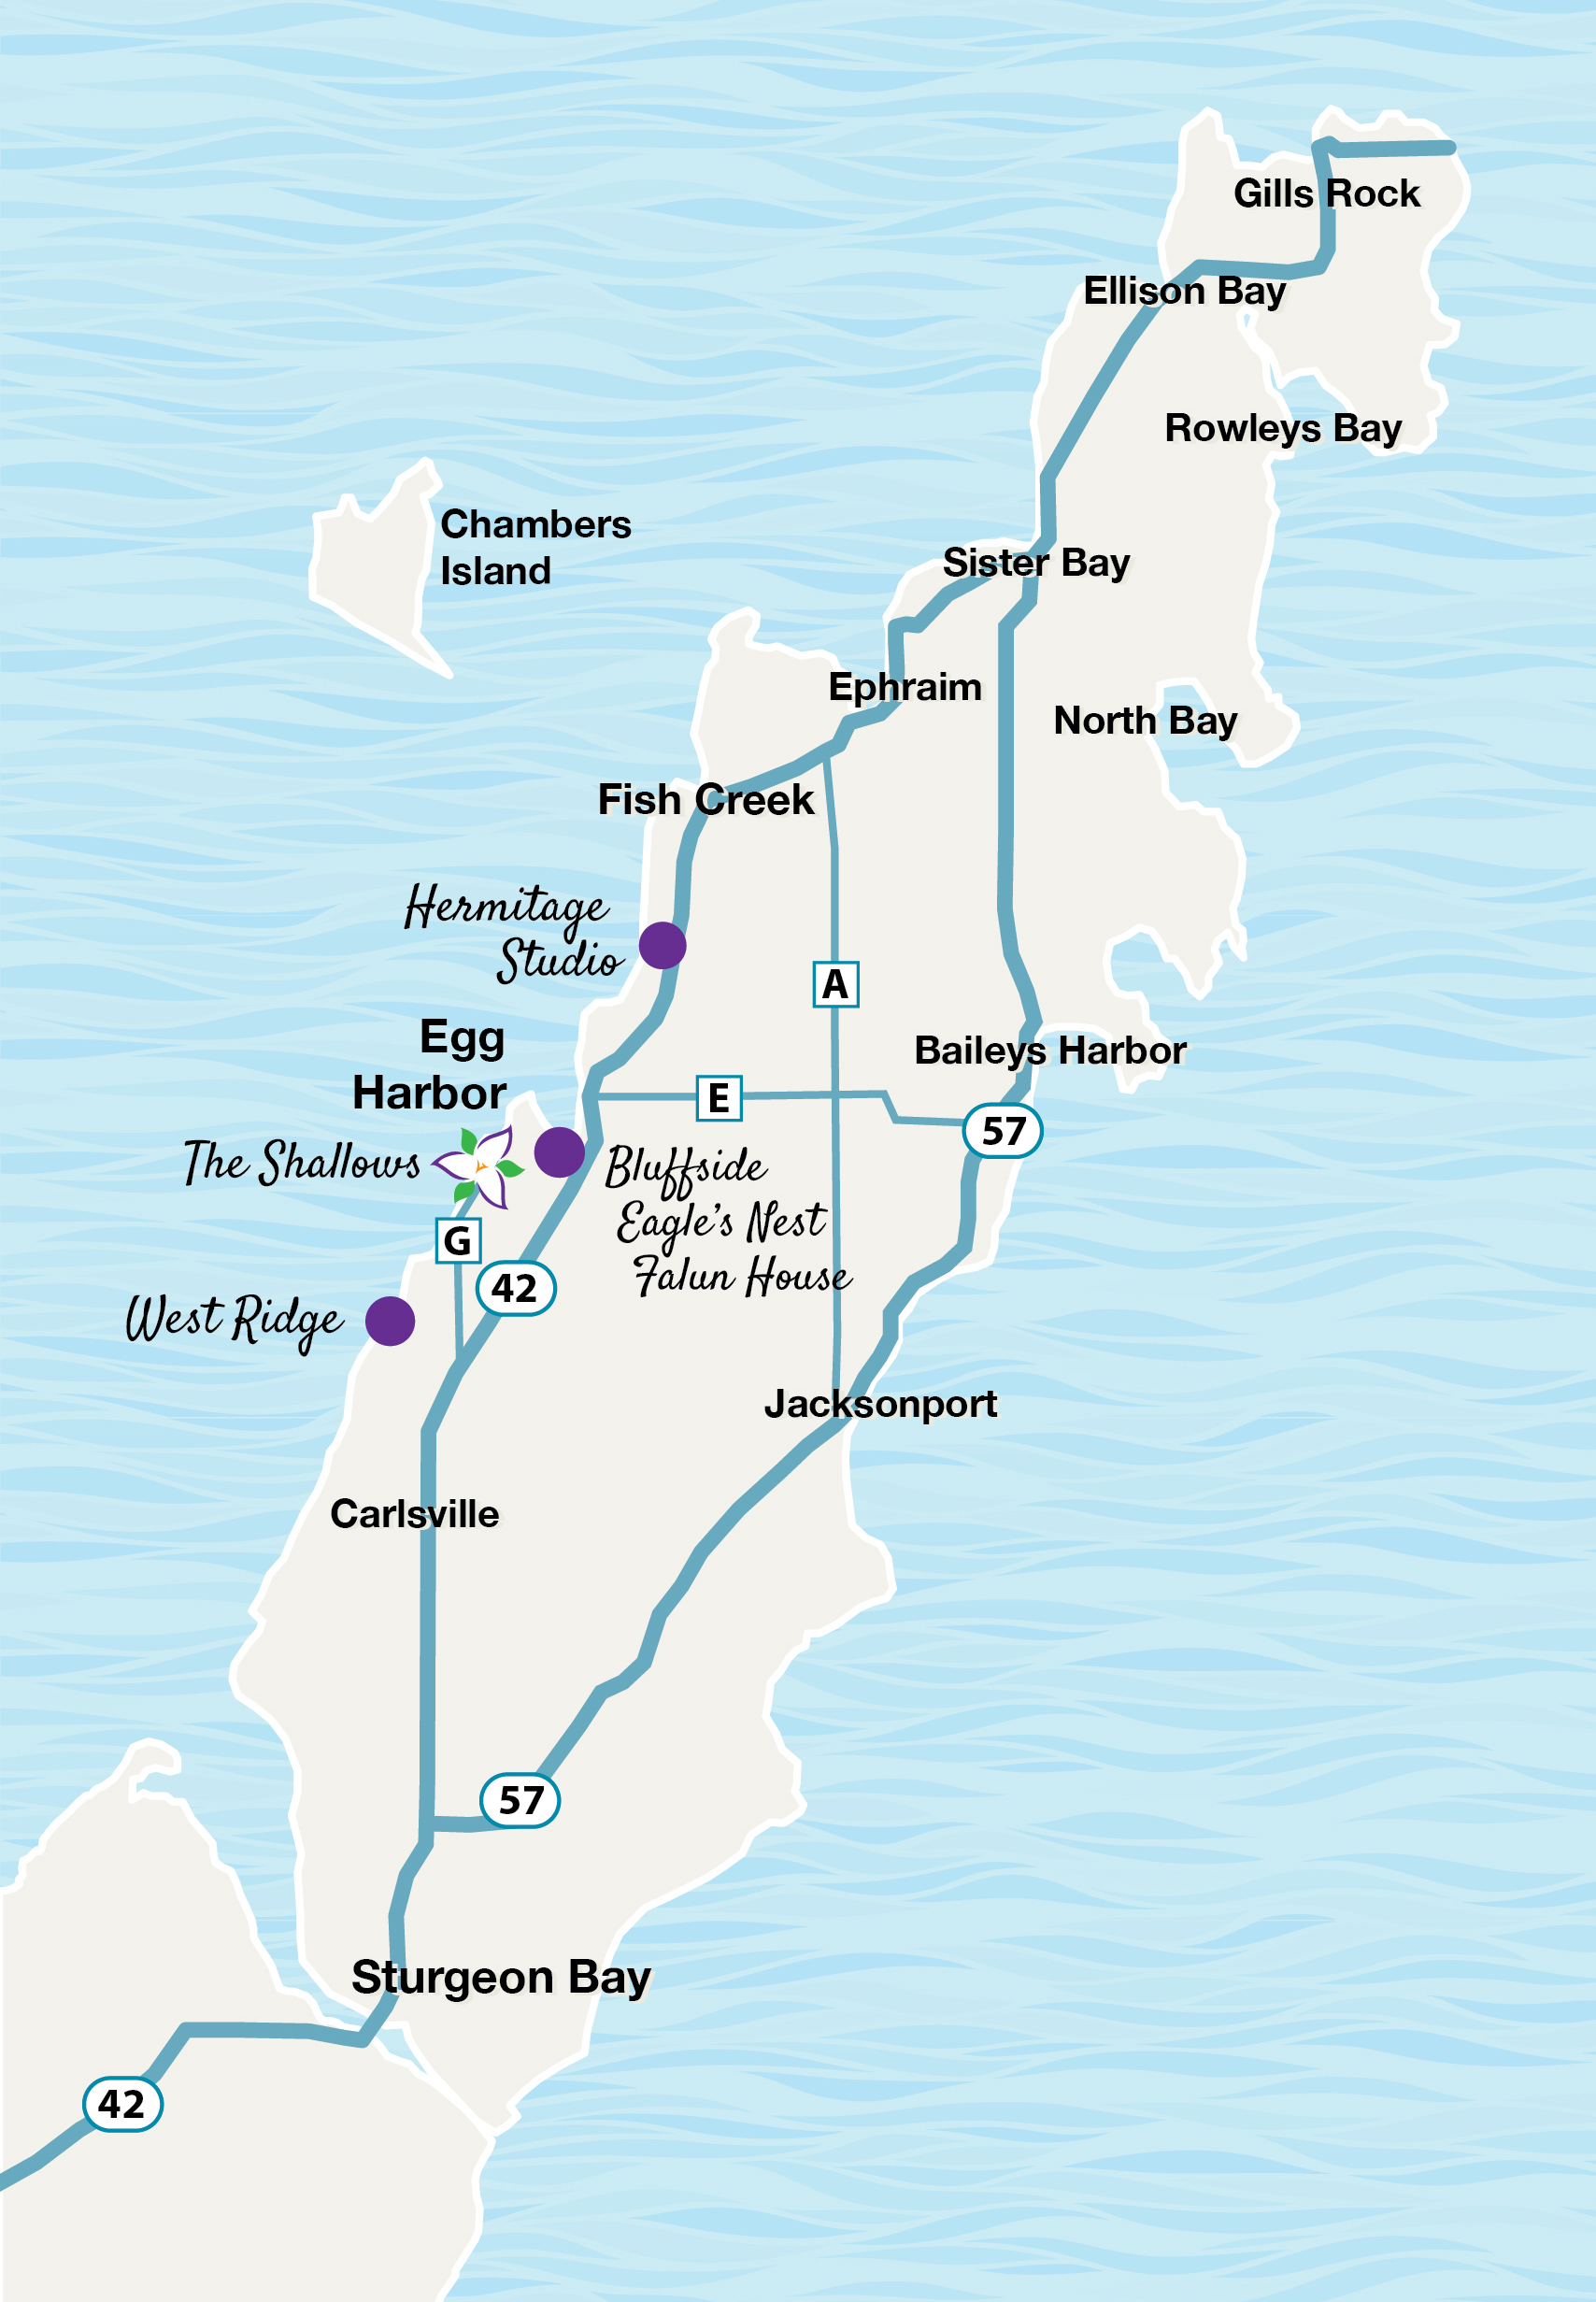 Illustrated map of Door County showing location of the Shallows Resort